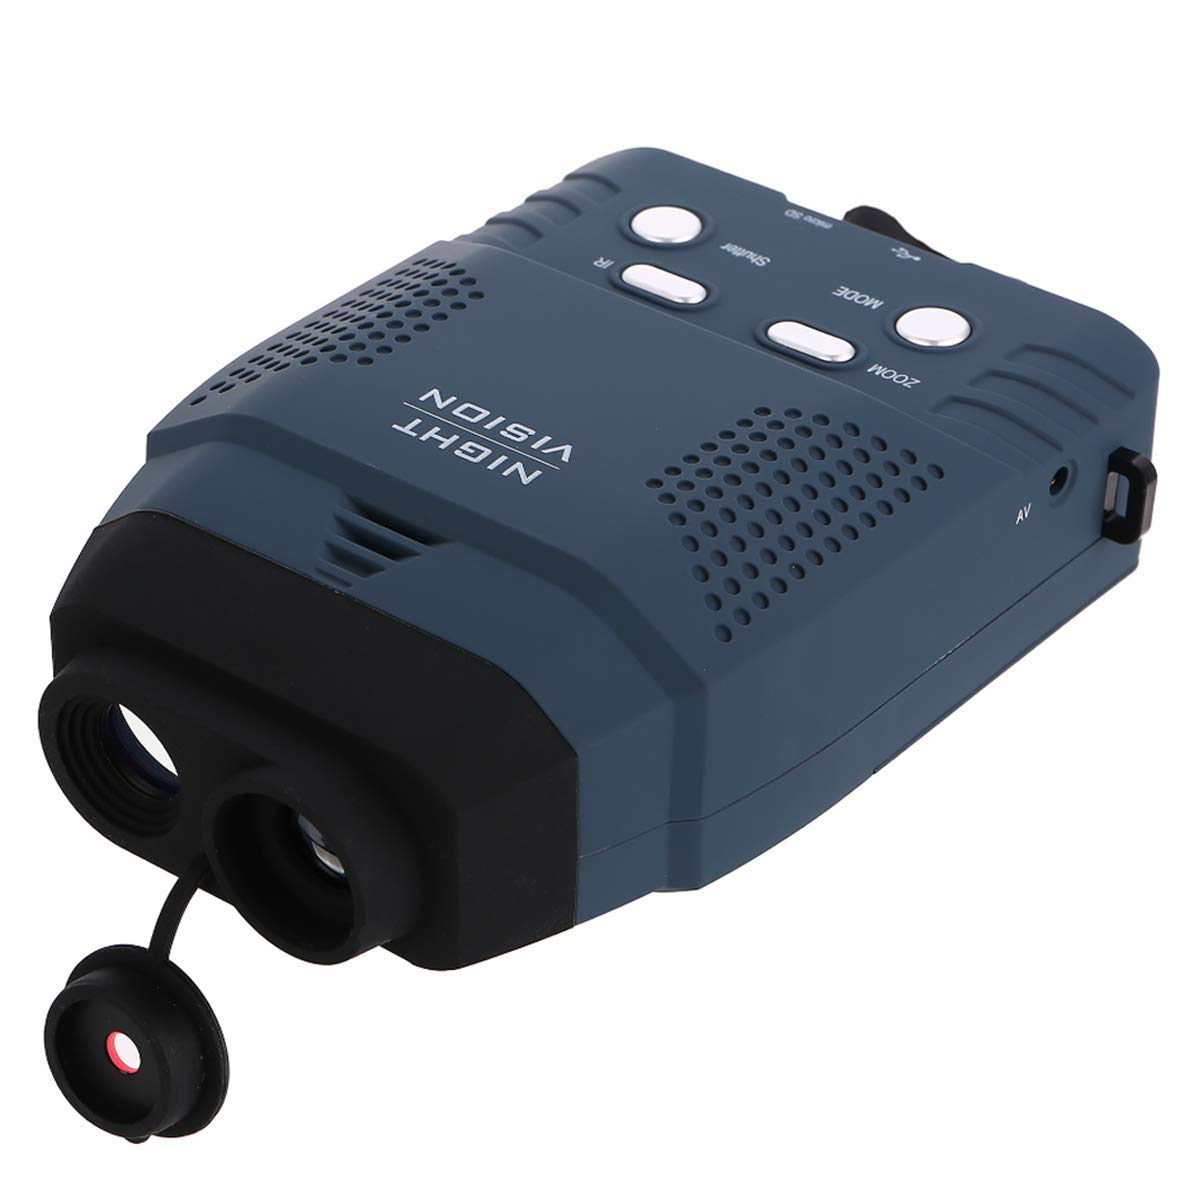 Hope Soo Digital Night Vision Monocular Portable Blue-Infrared Illuminator HD Night Vision Scope with Photo Camera & Camcorder Function New Optics for Outdoor by Hope Soo